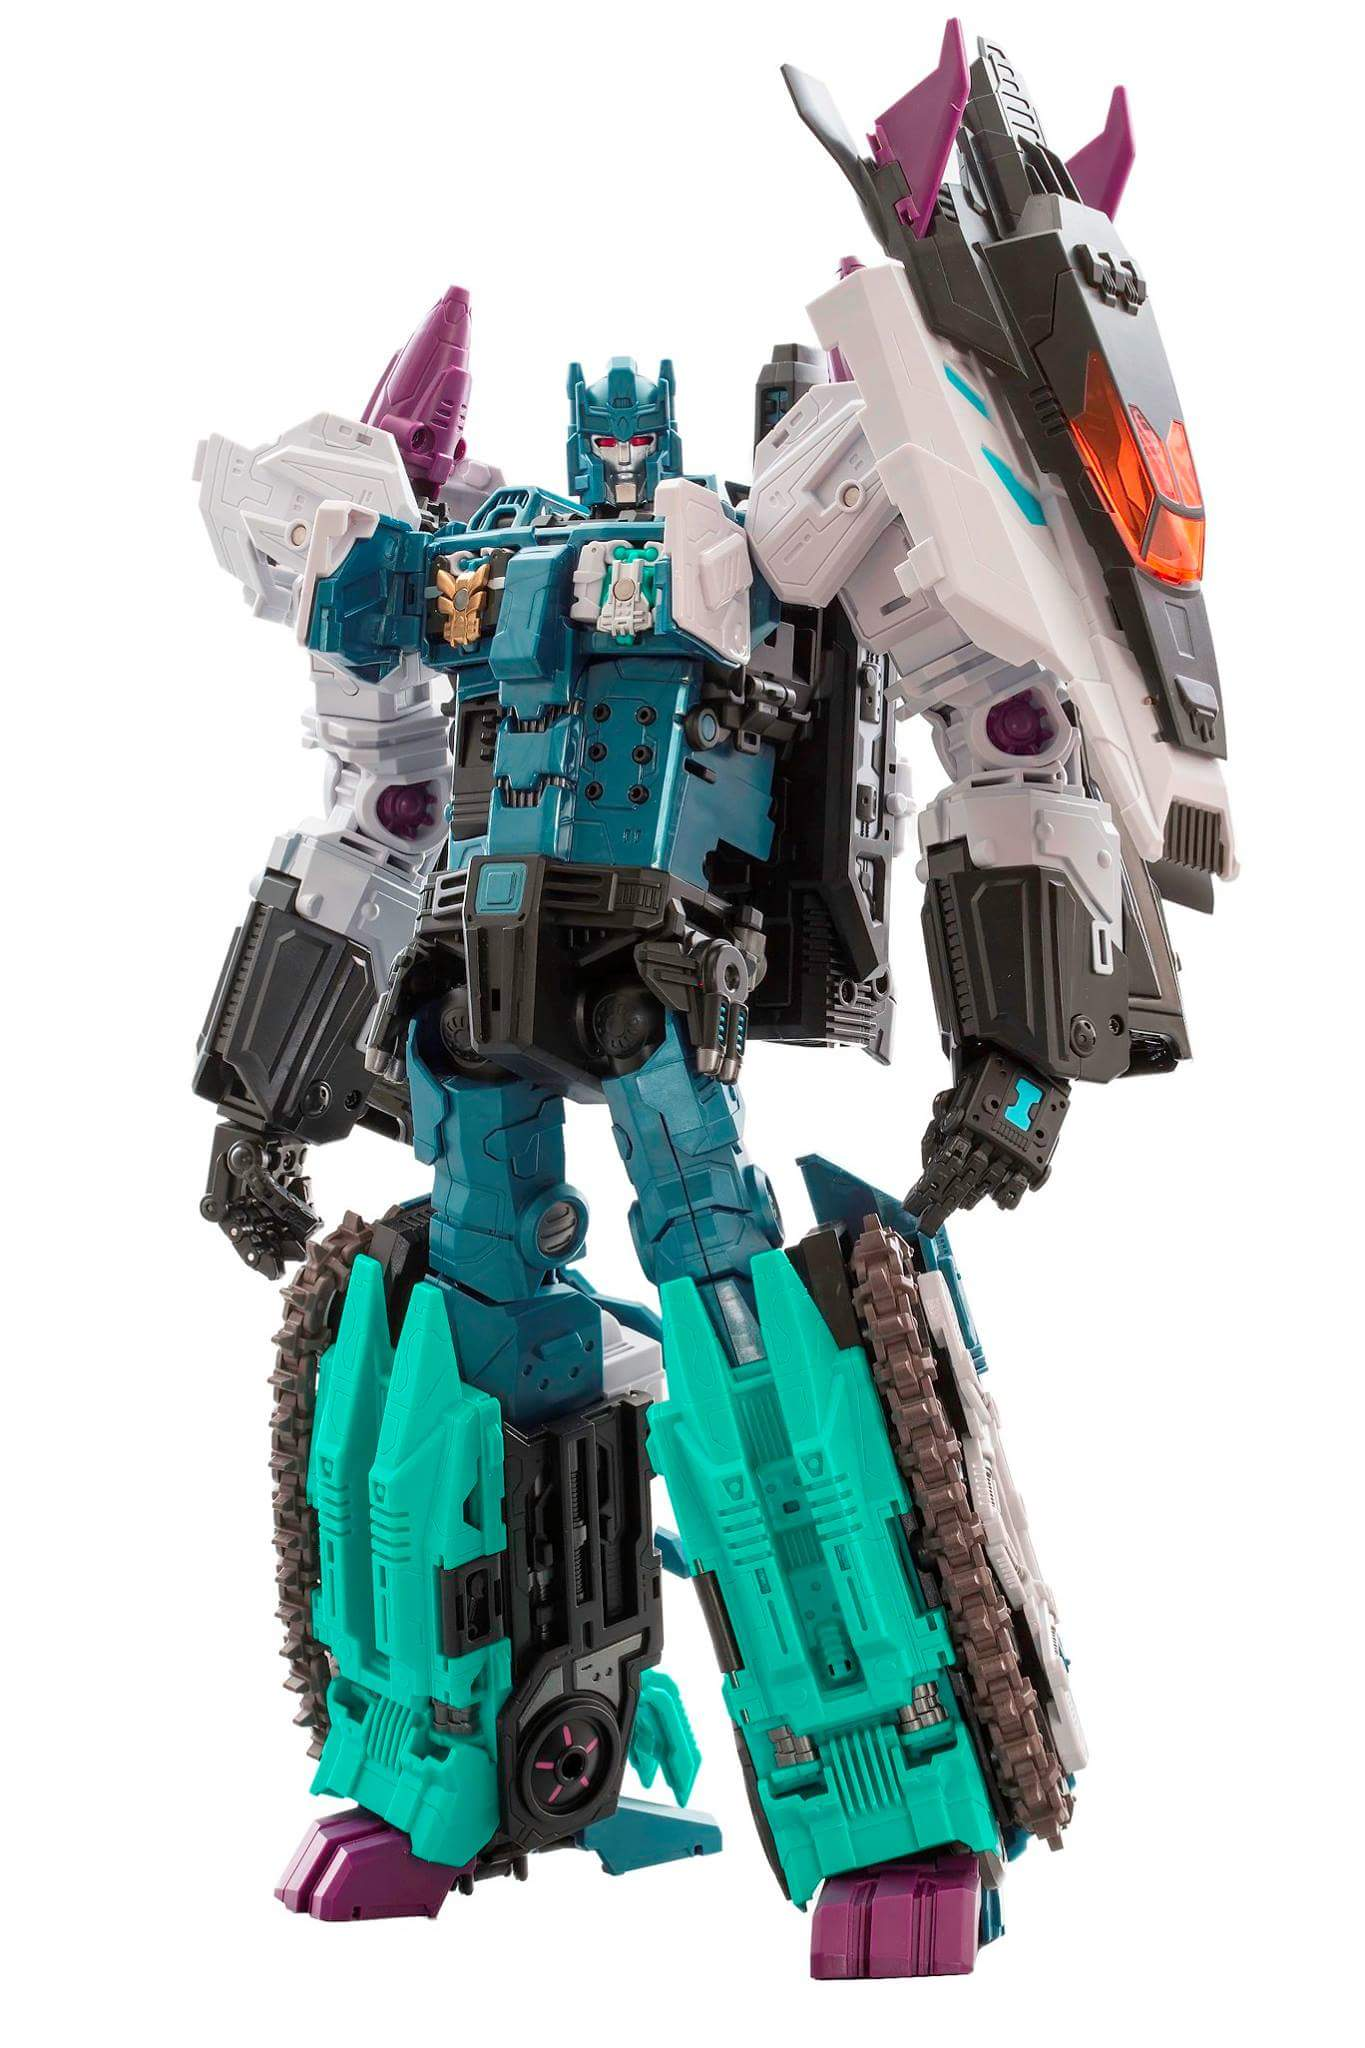 [Mastermind Creations] Produit Tiers - R-17 Carnifex - aka Overlord (TF Masterforce) - Page 3 LZ3hWPwd